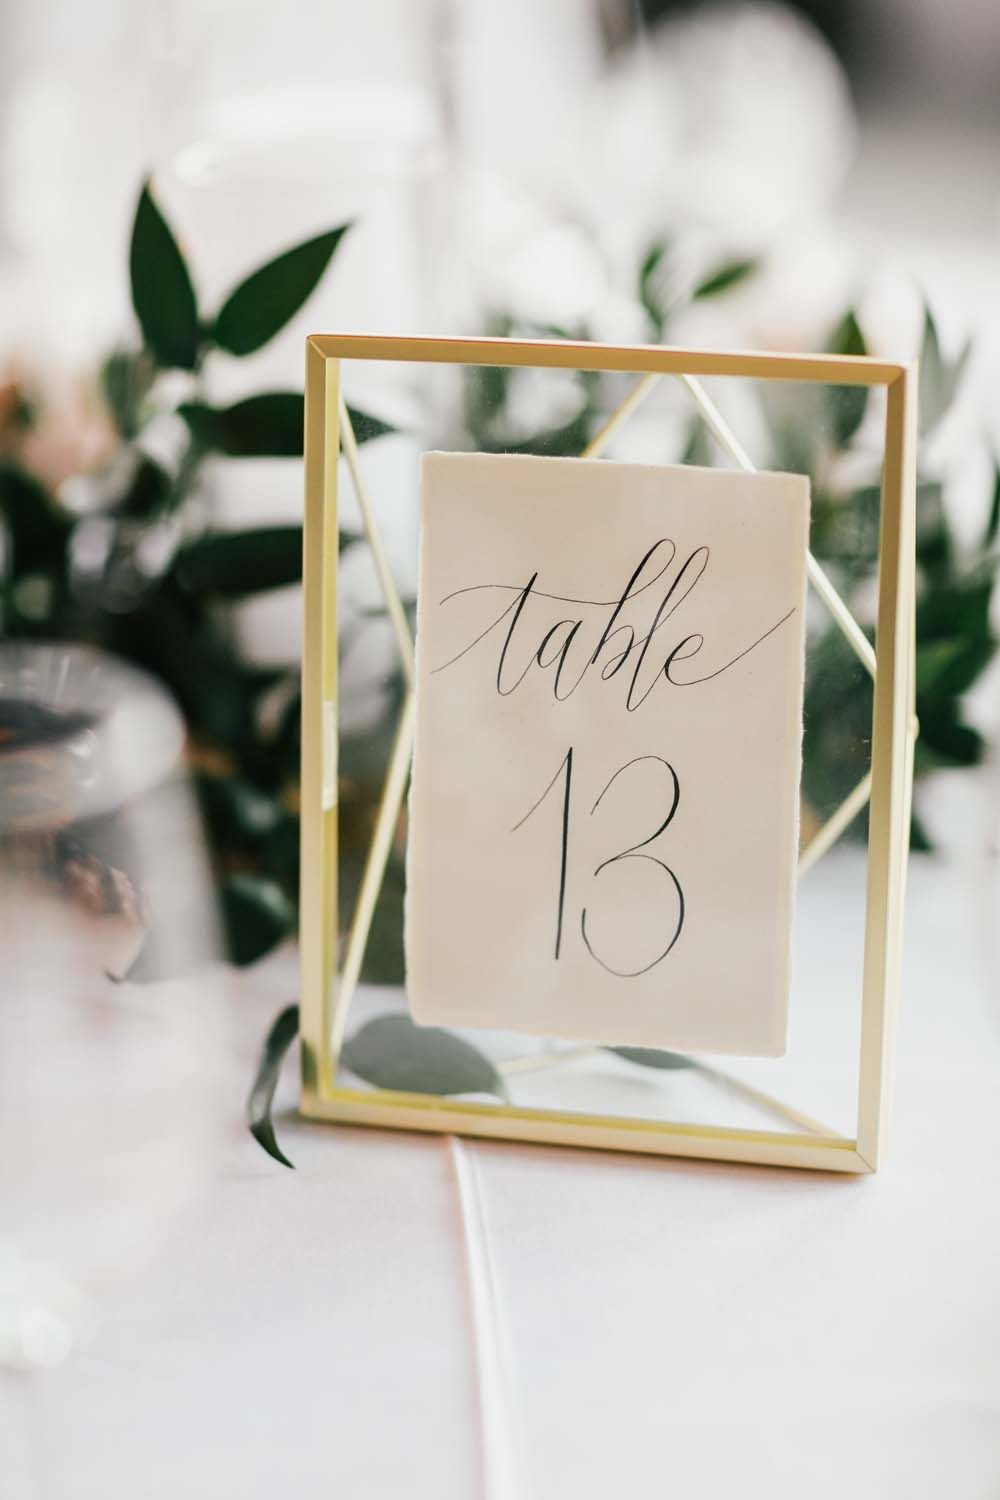 Wedding Table Numbers For Your Big Day